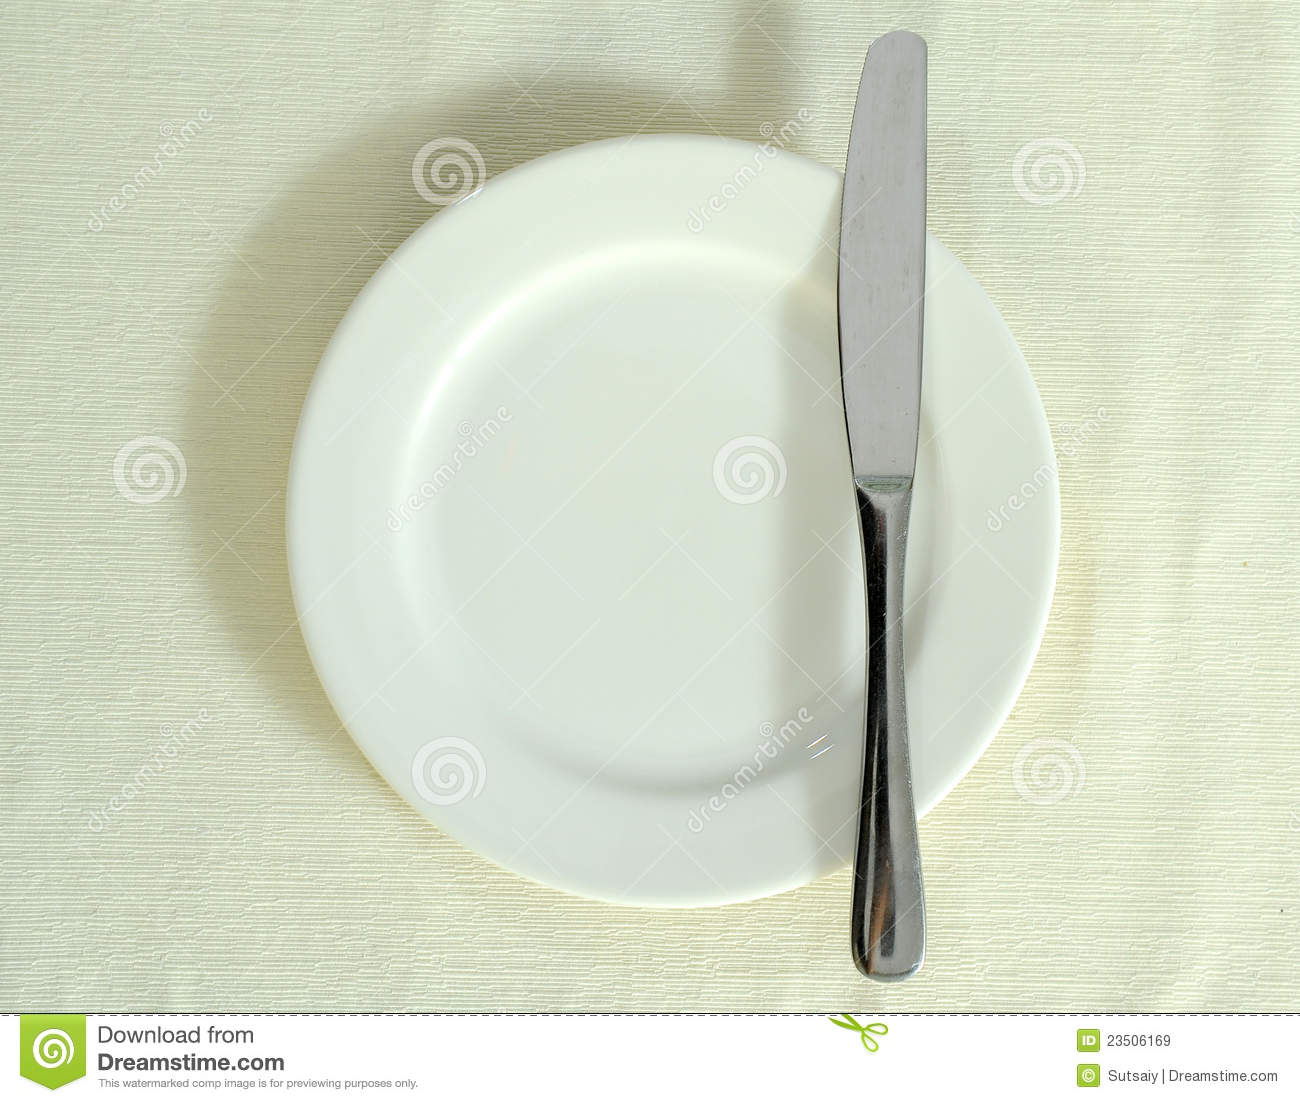 Knife, White Plate Royalty Free Stock Images - Image: 23506169 Table Knife Clipart